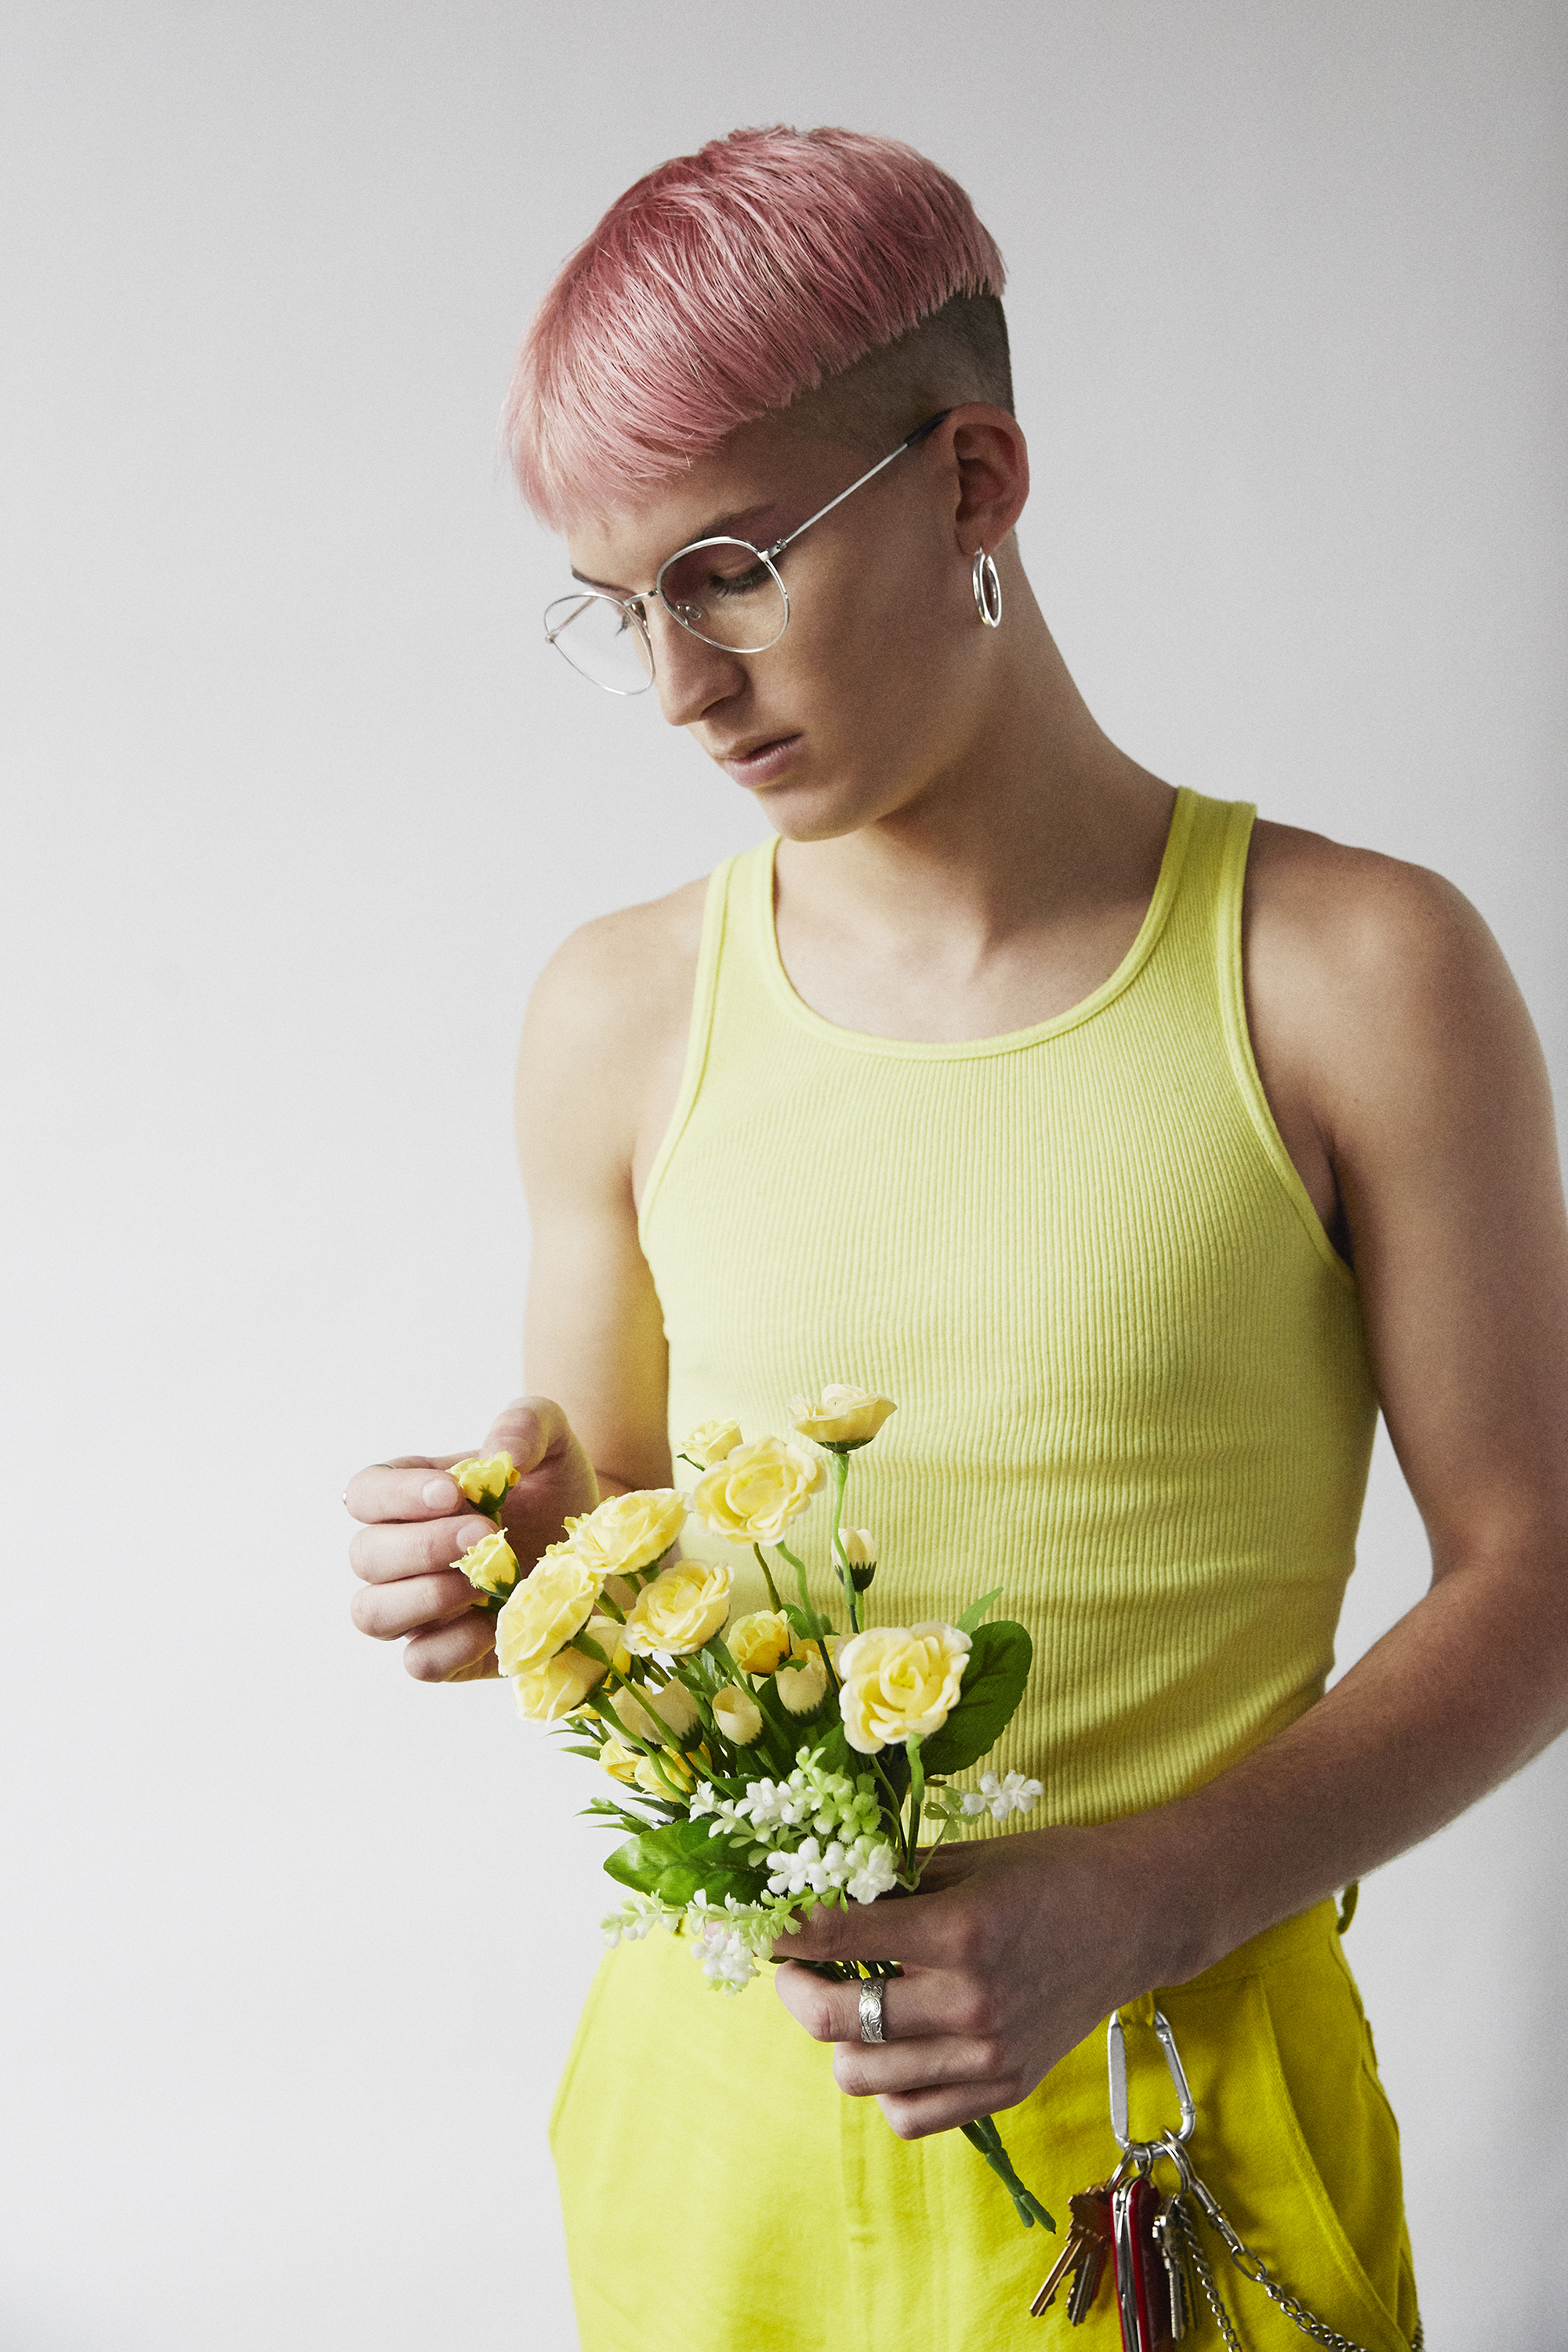 190124_WP_GusDapperton_0672.jpg